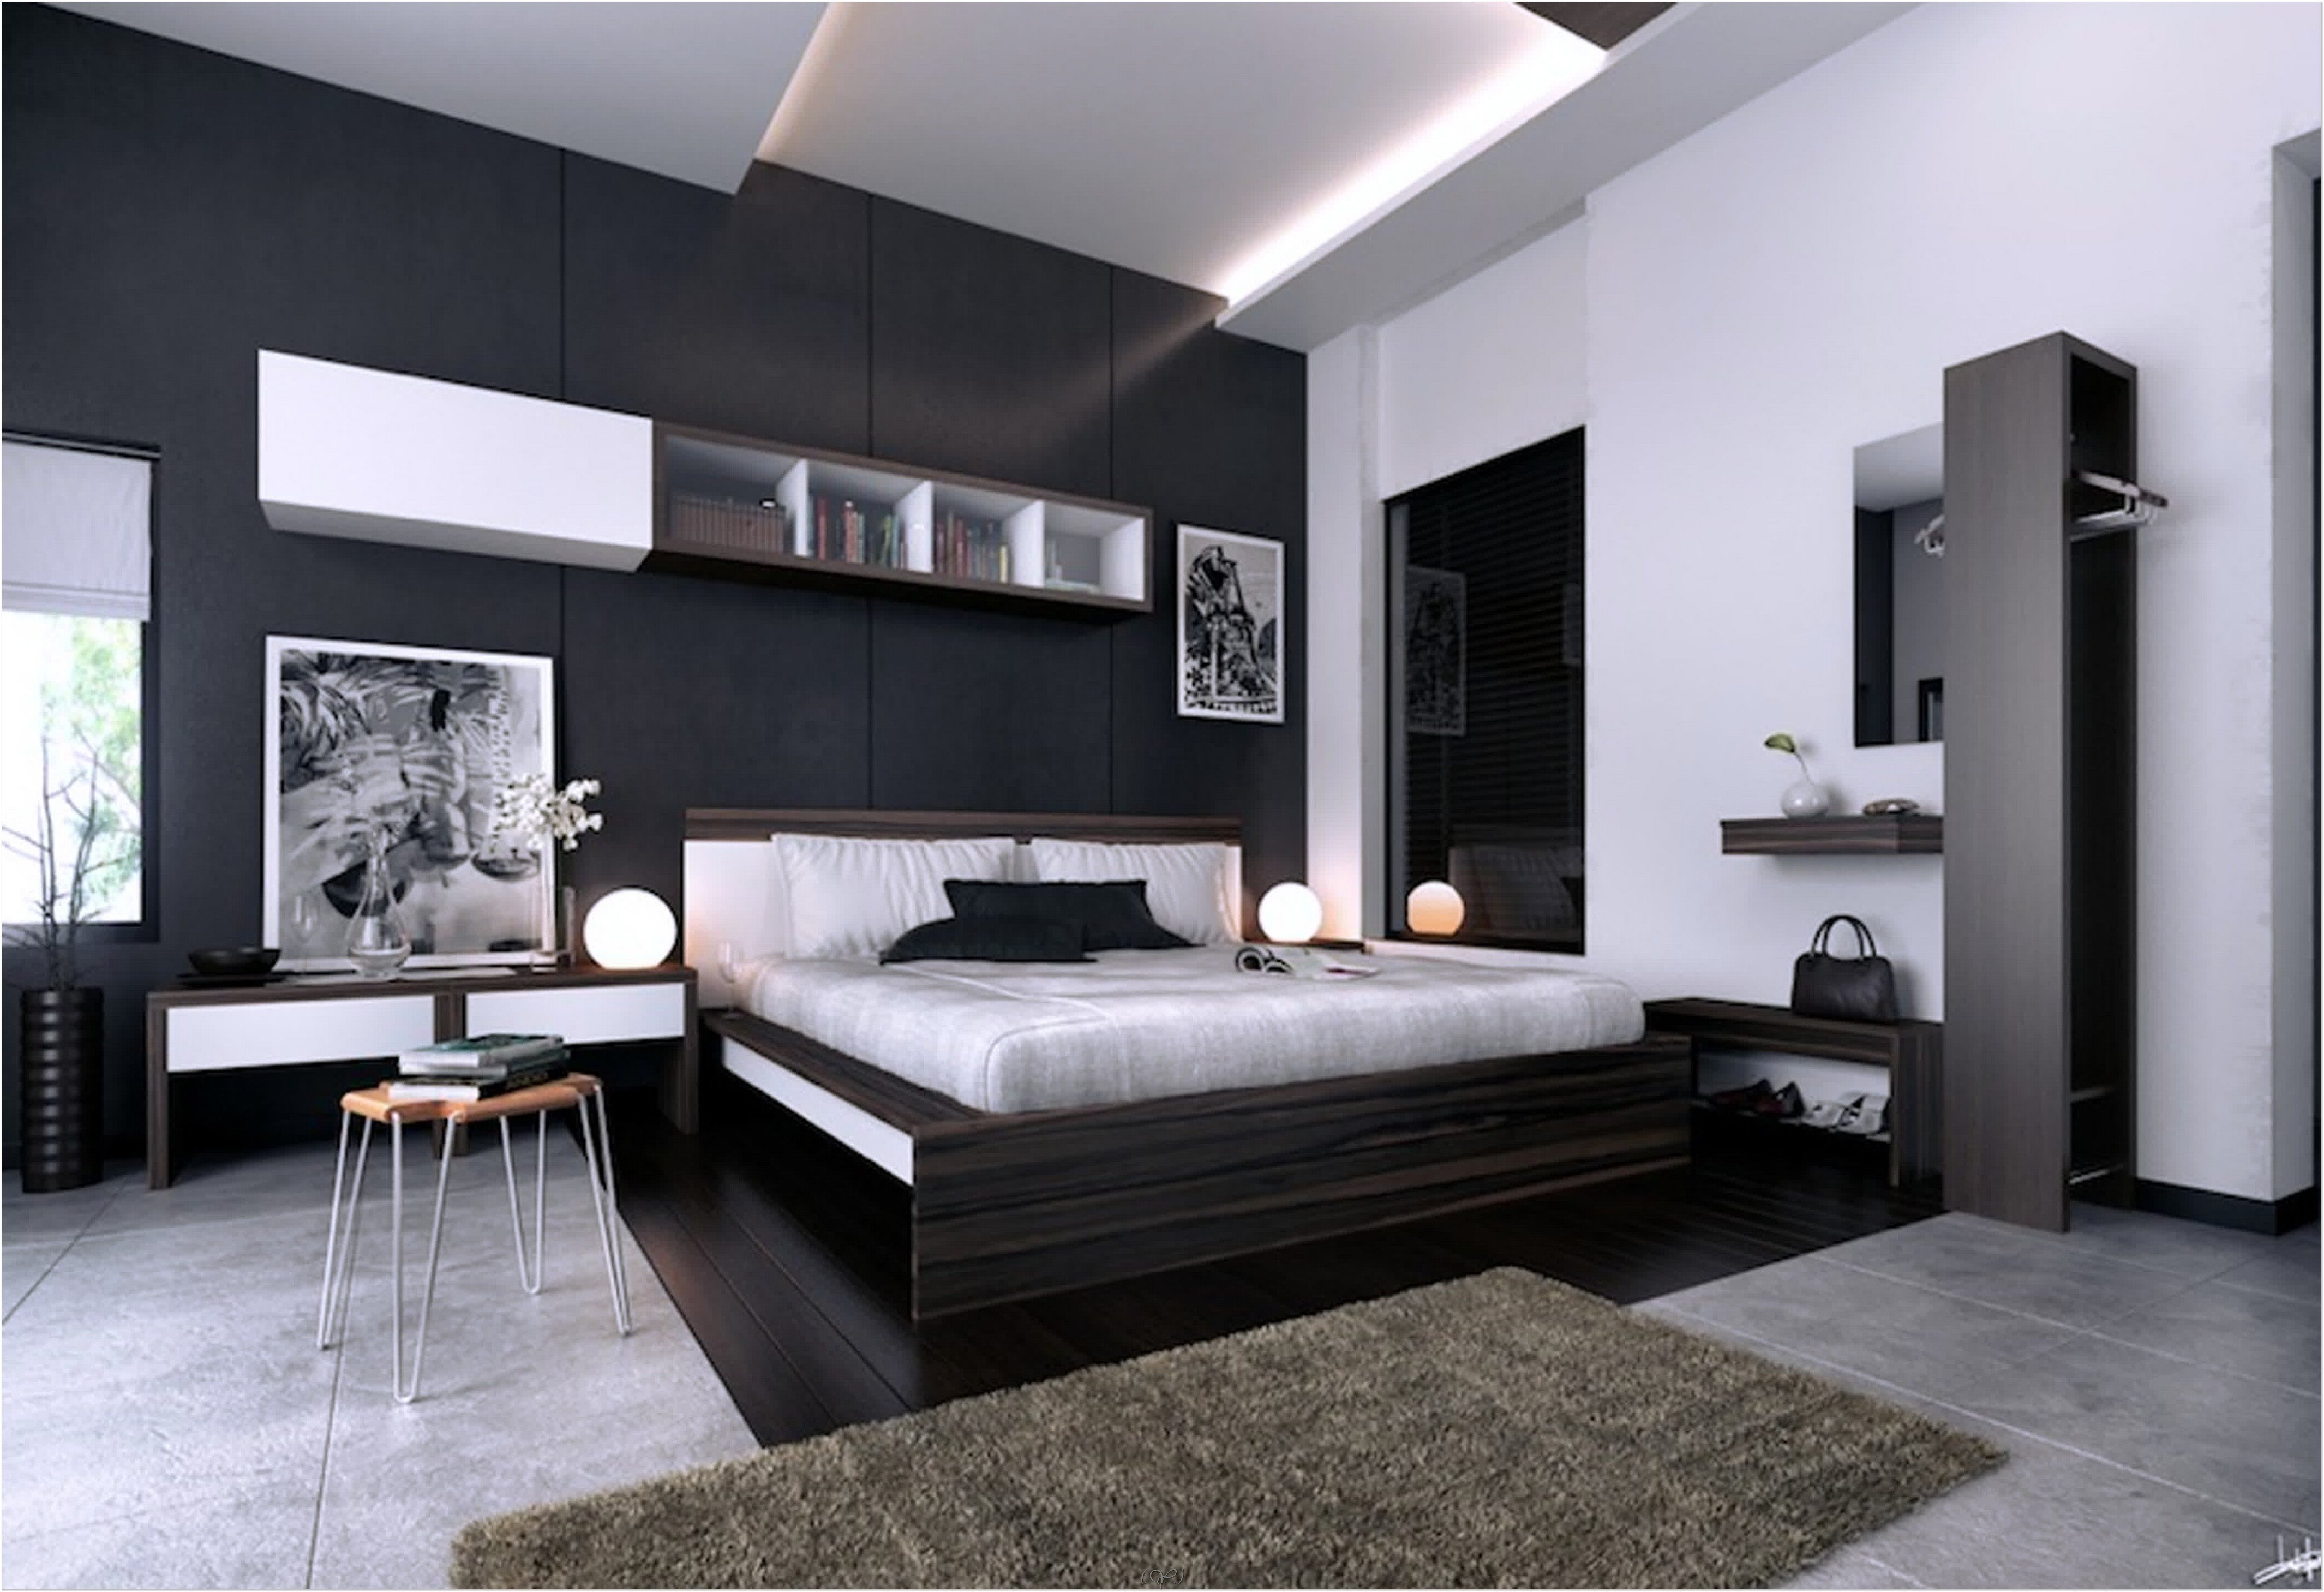 10 Cute Ideas For Painting A Room bedroom paint and decorating ideas luxury what color to paint 2020